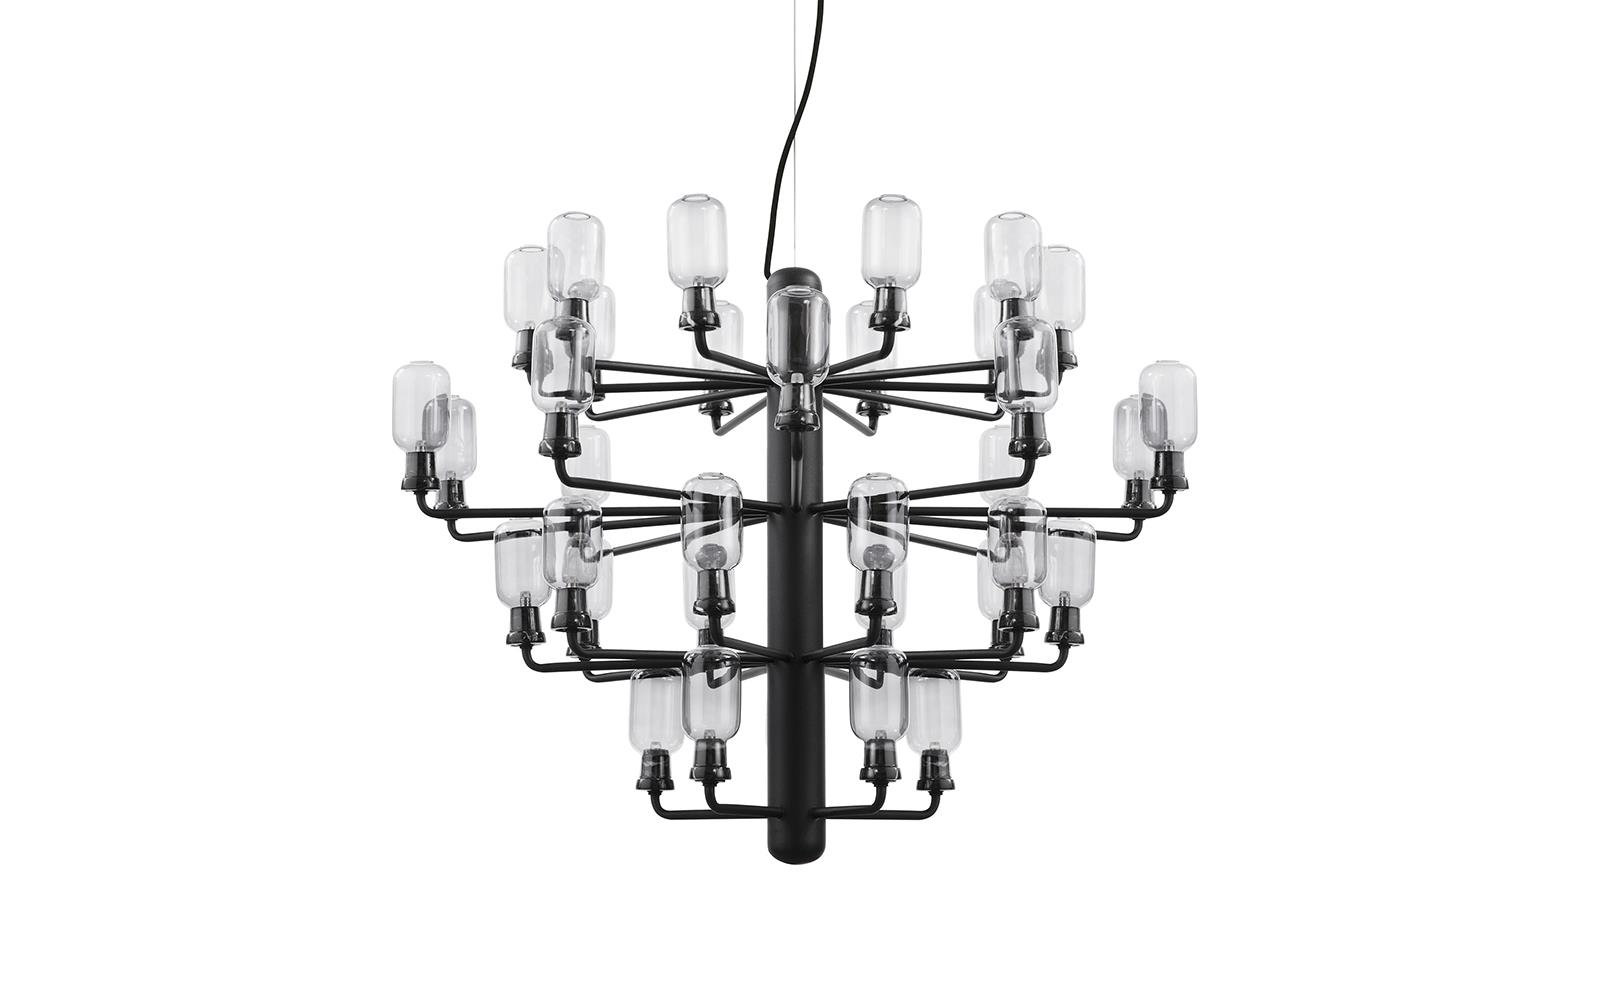 light home canada rustic fans en chandelier modern and in delphine categories depot oil lights lighting the ceiling p more images rubbed bronze chandeliers